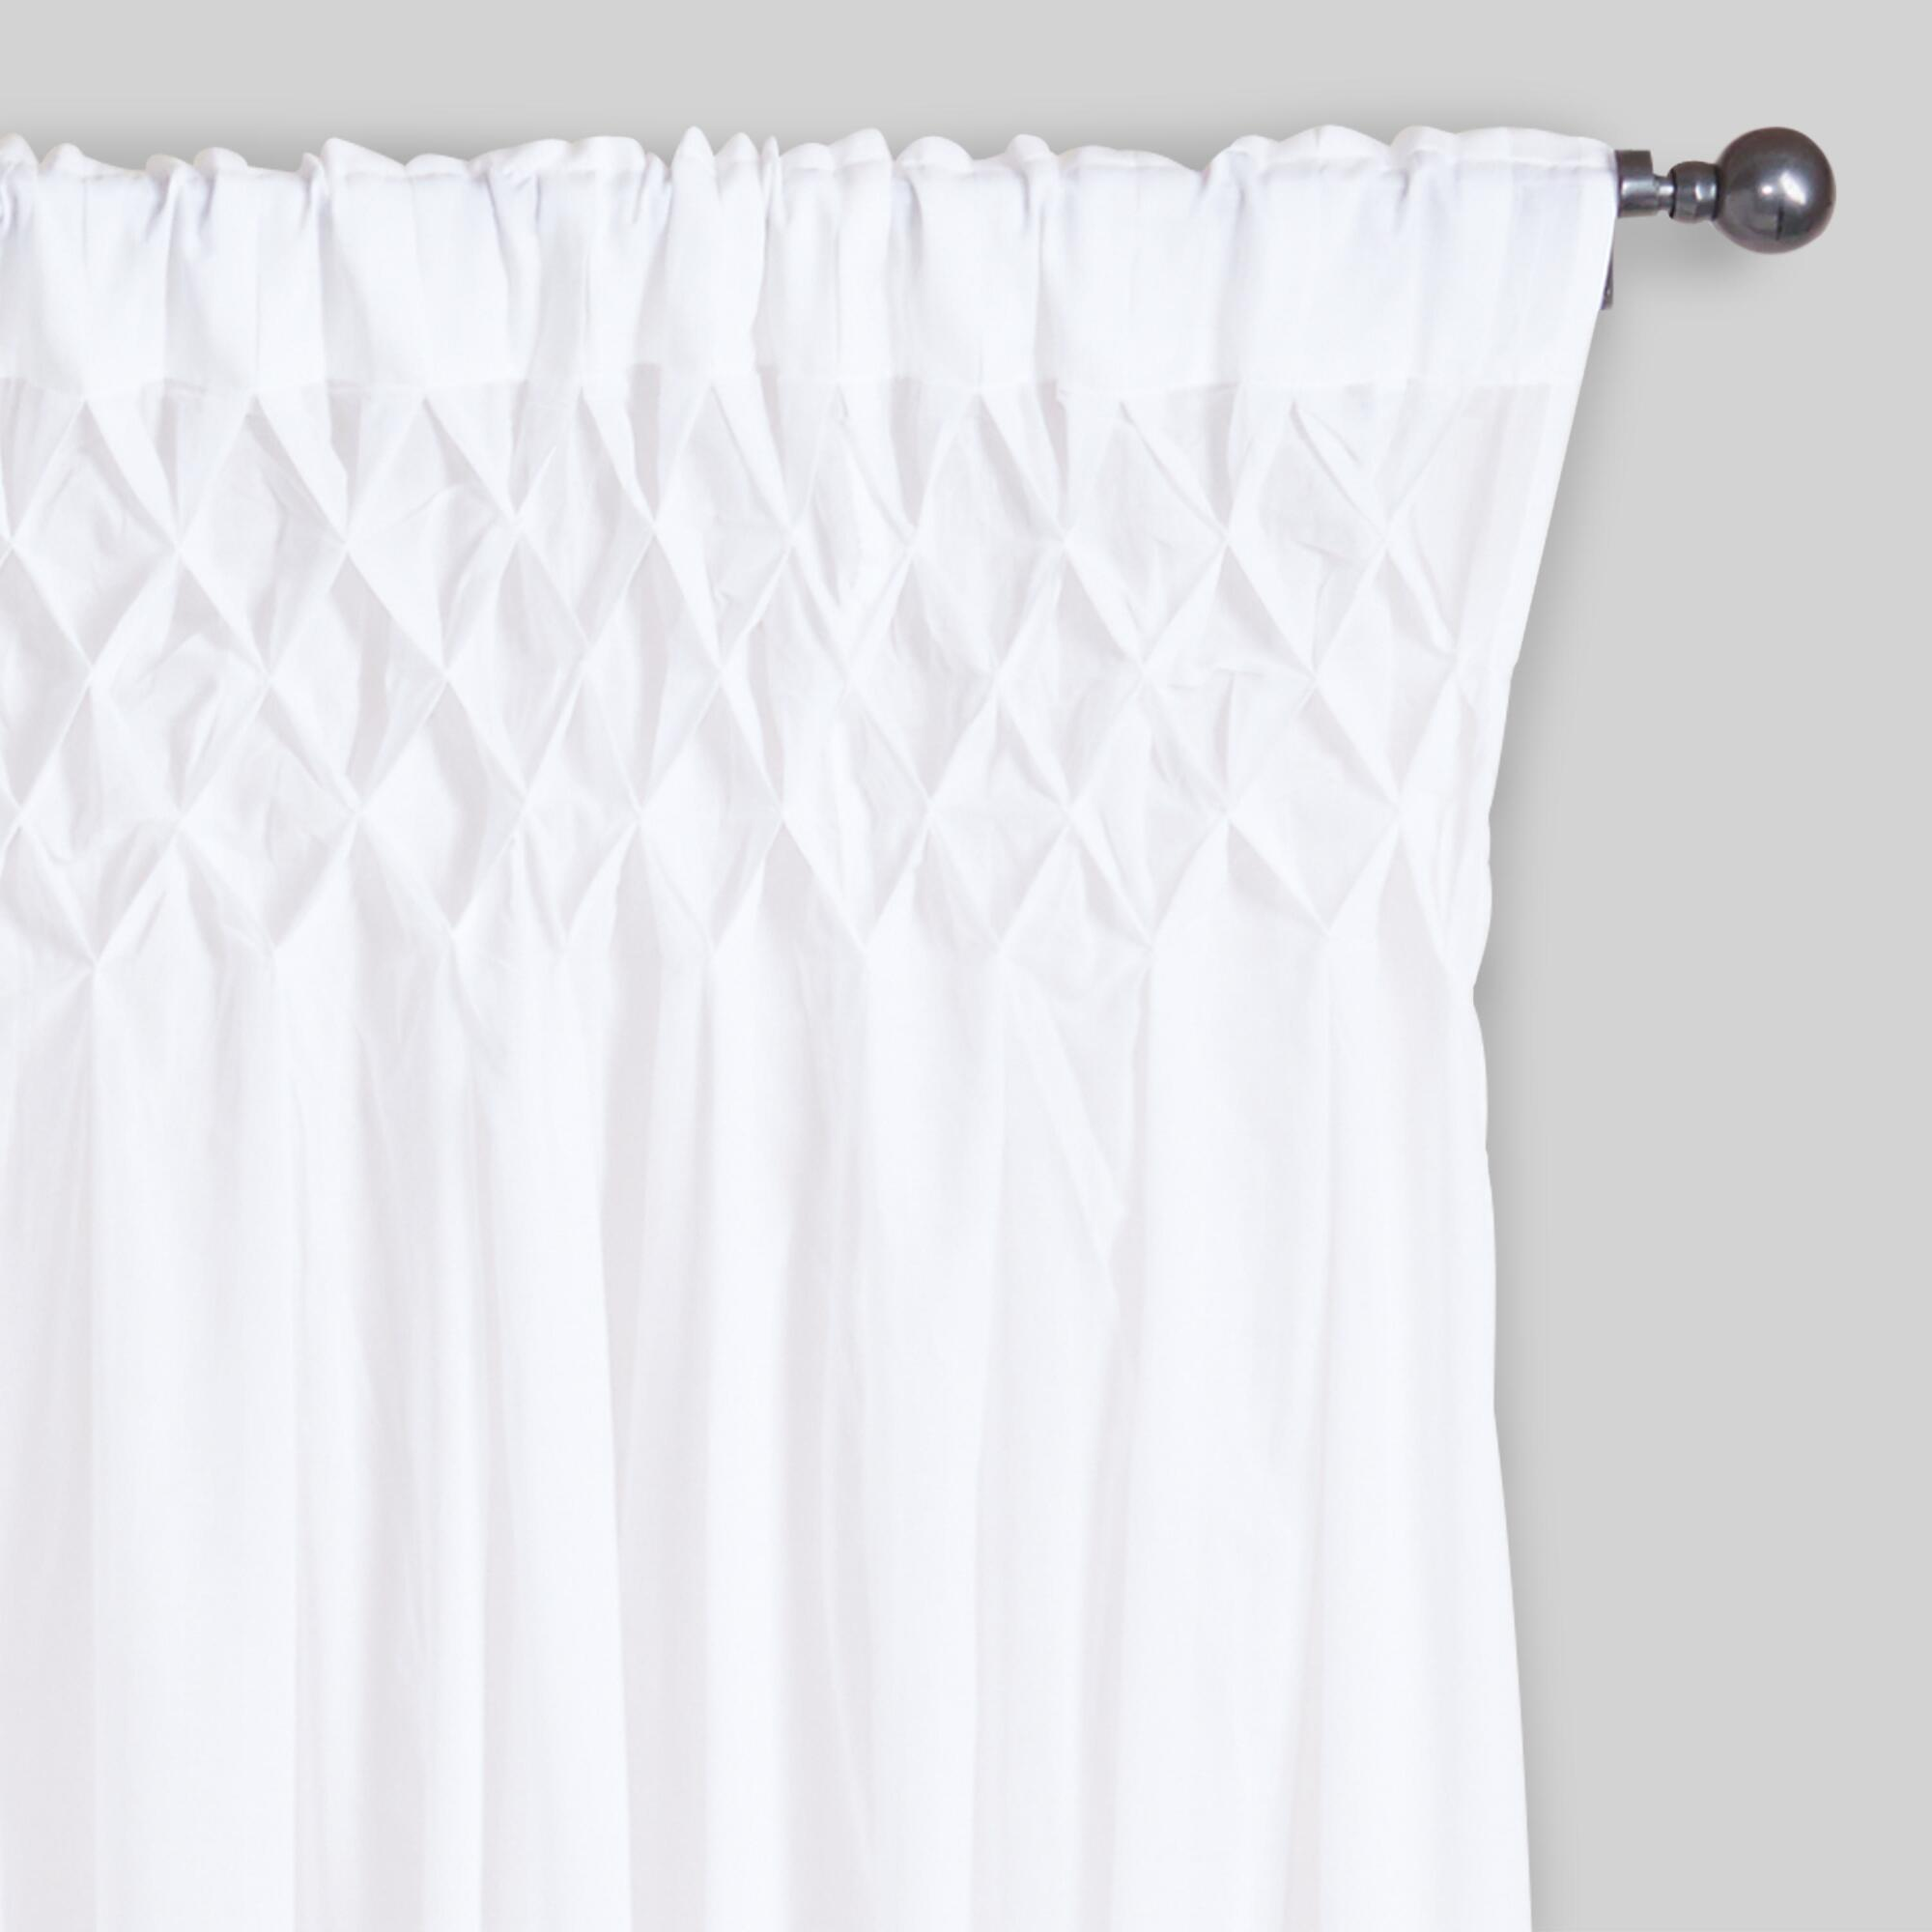 white today panel free cotton overstock product smocked sheer kosas curtains home garden shipping curtain inch fabc